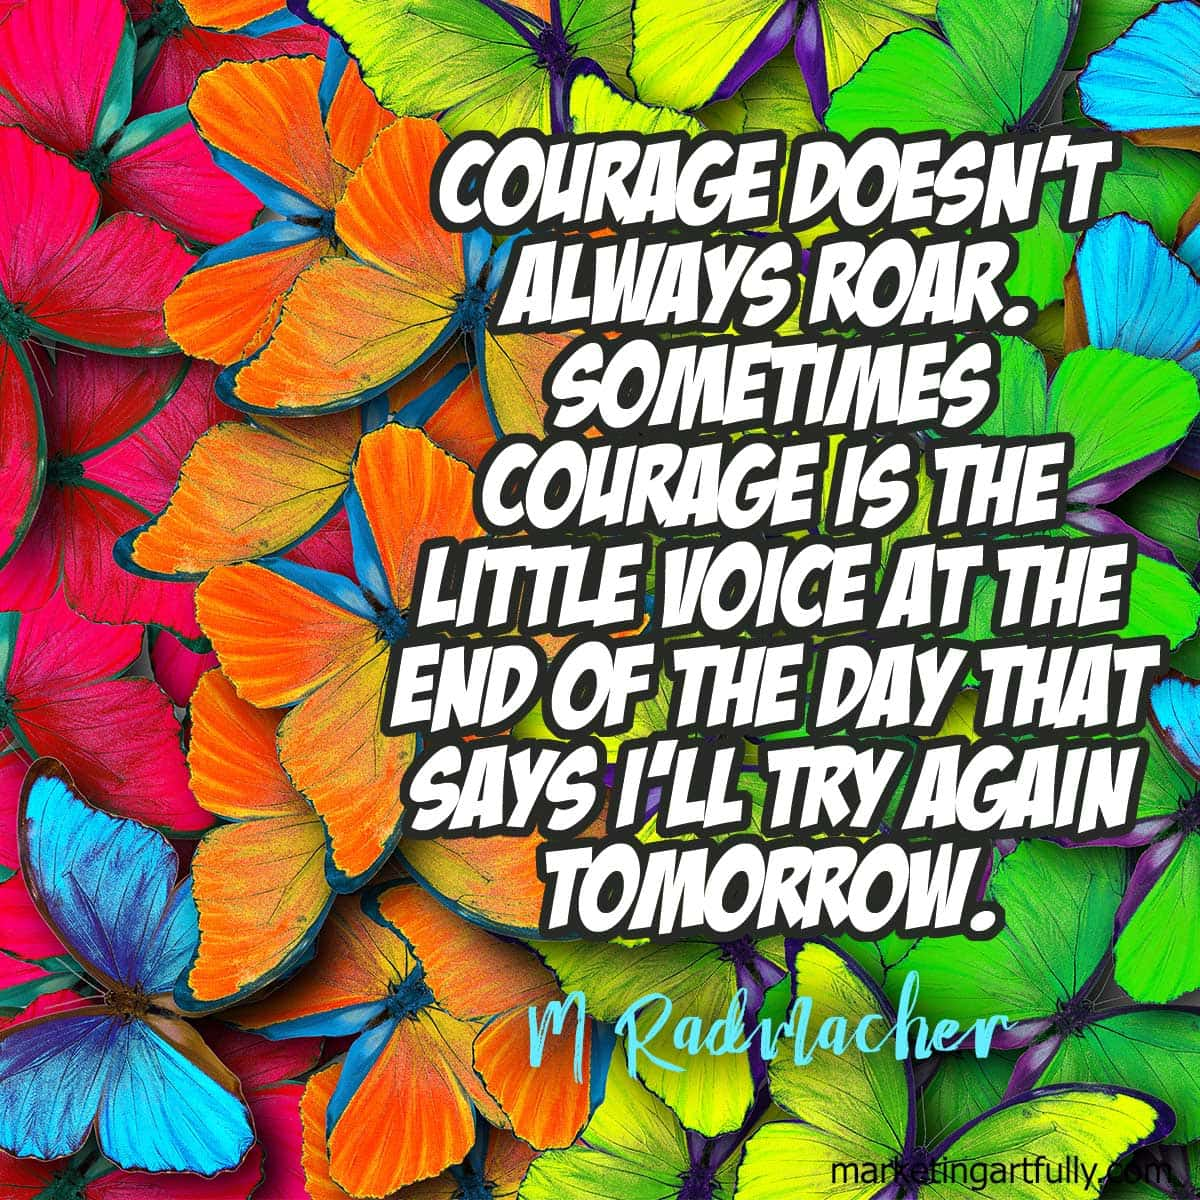 Courage doesn't always roar. Sometimes courage is the little voice at the end of the day that says I'll try again tomorrow.M Radmacher